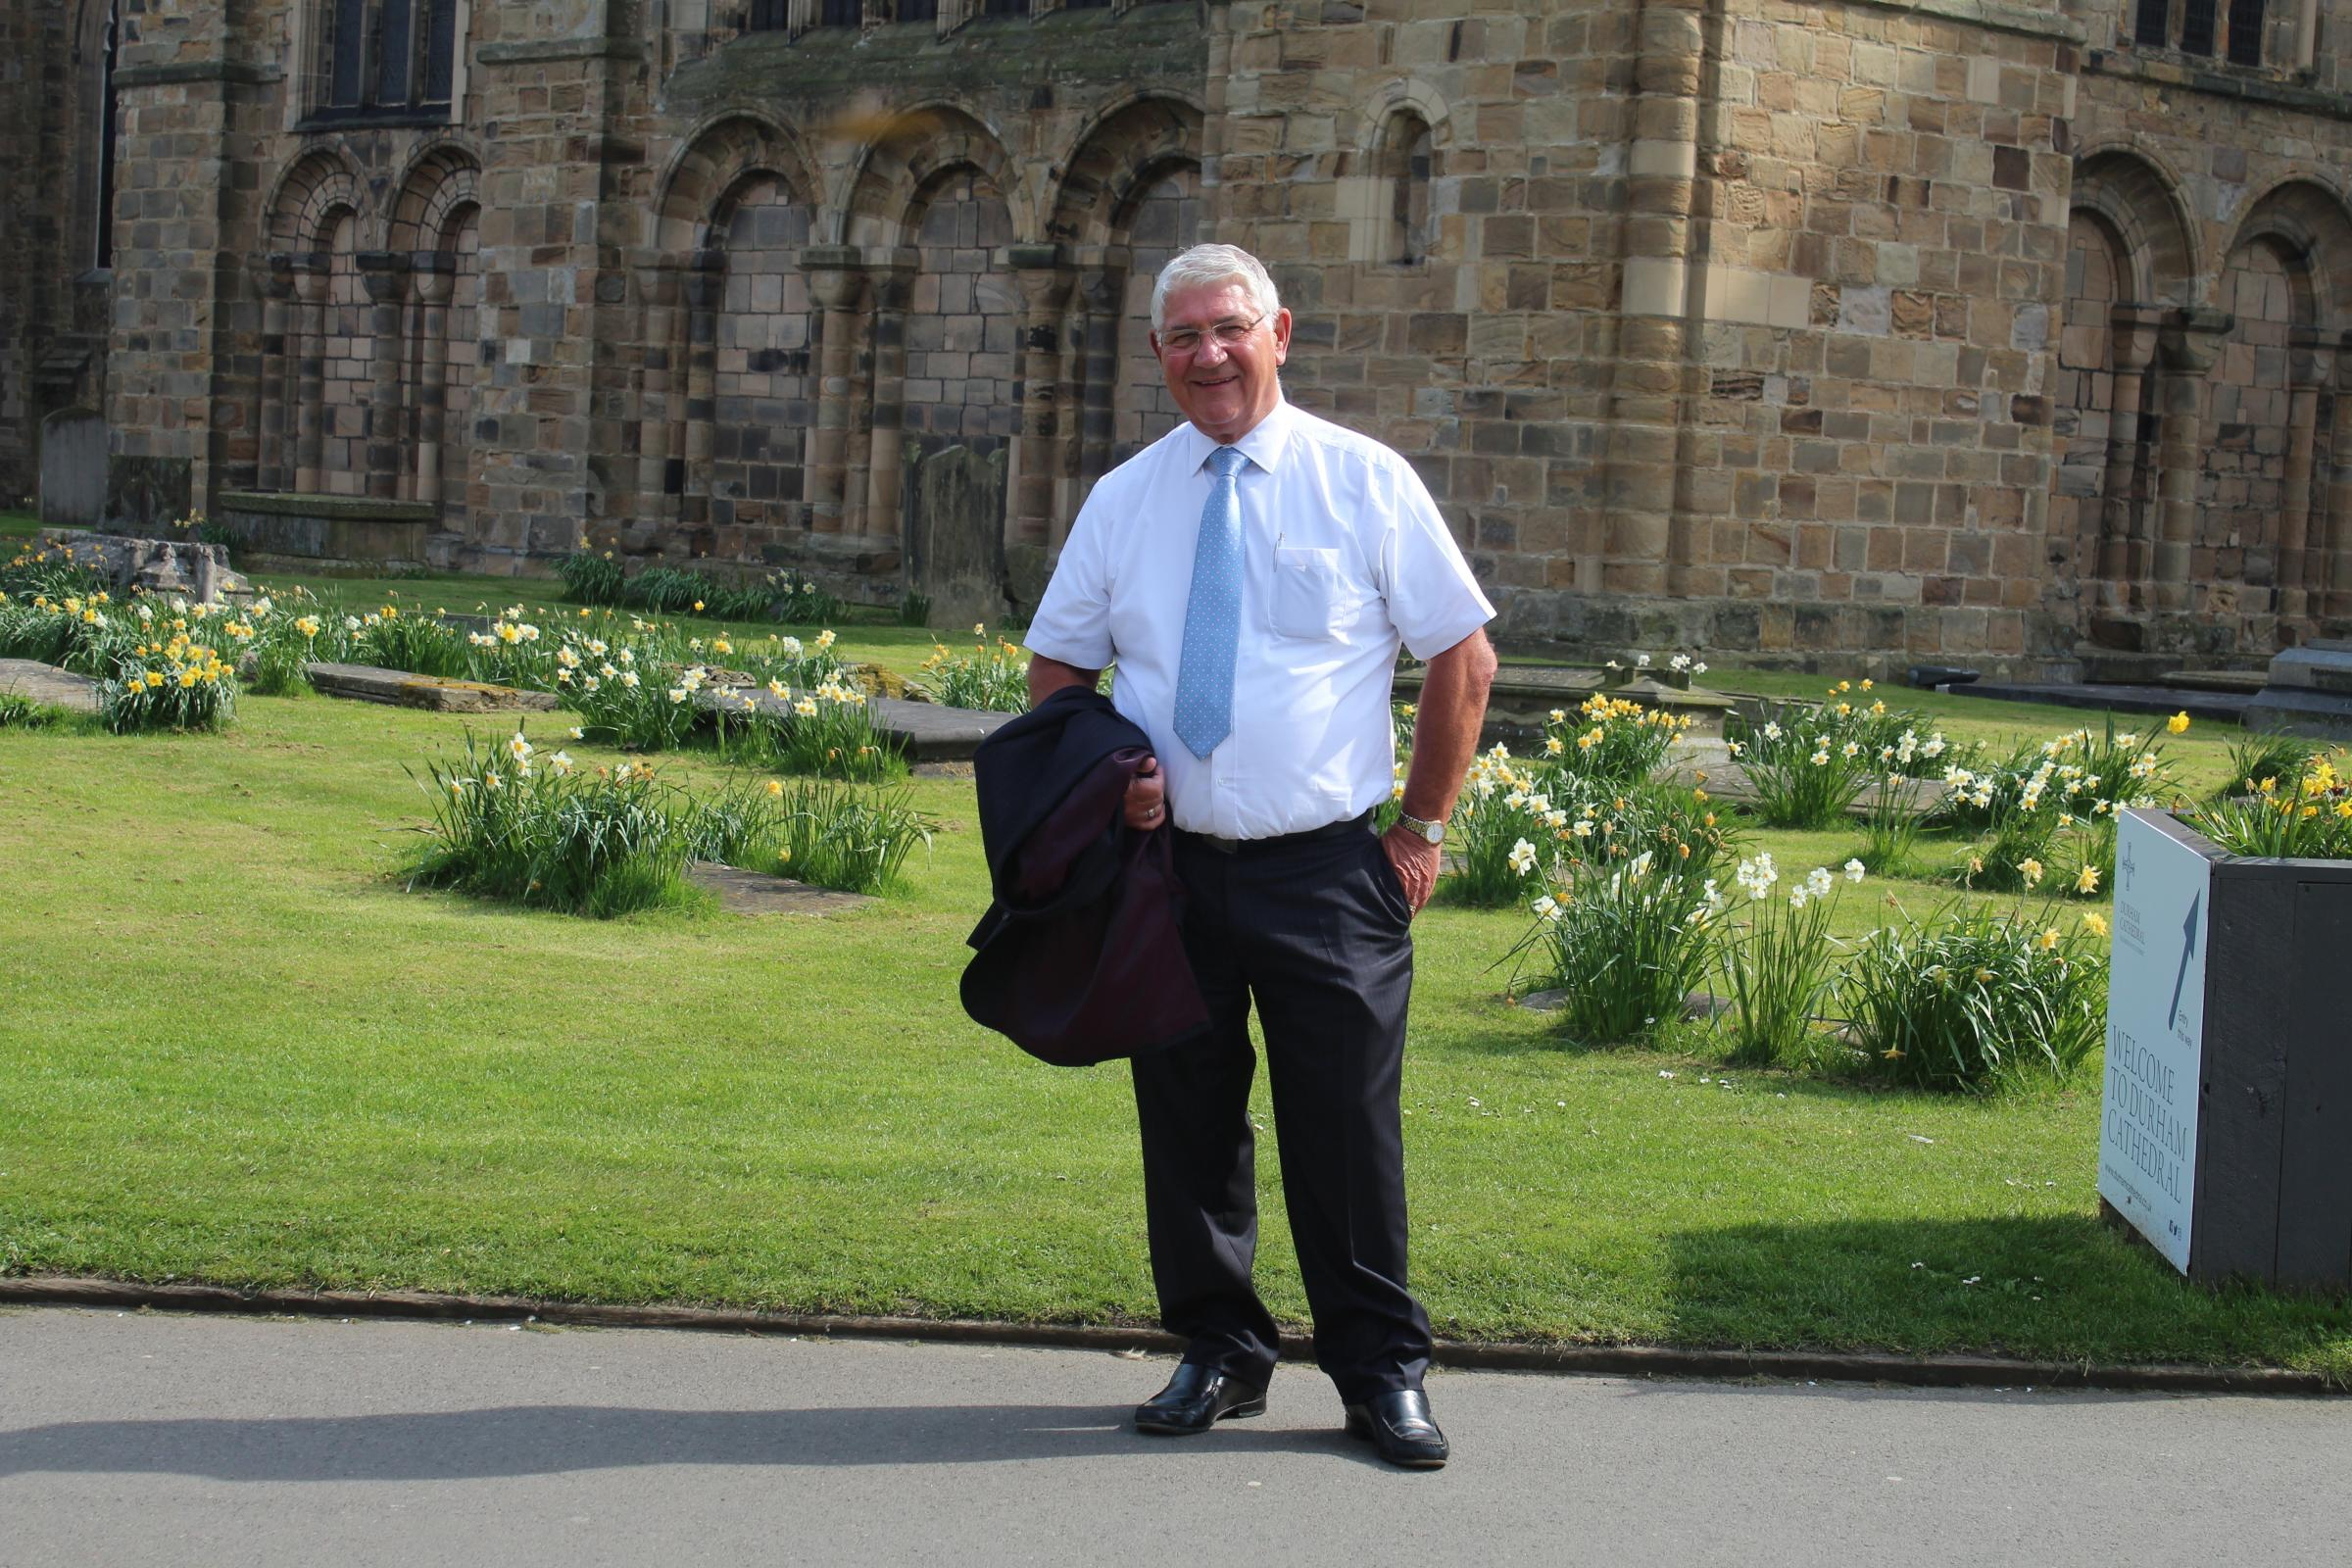 SLEEPOUT CHALLENGE: Ron Hogg will be taking part in the Durham SleepOut